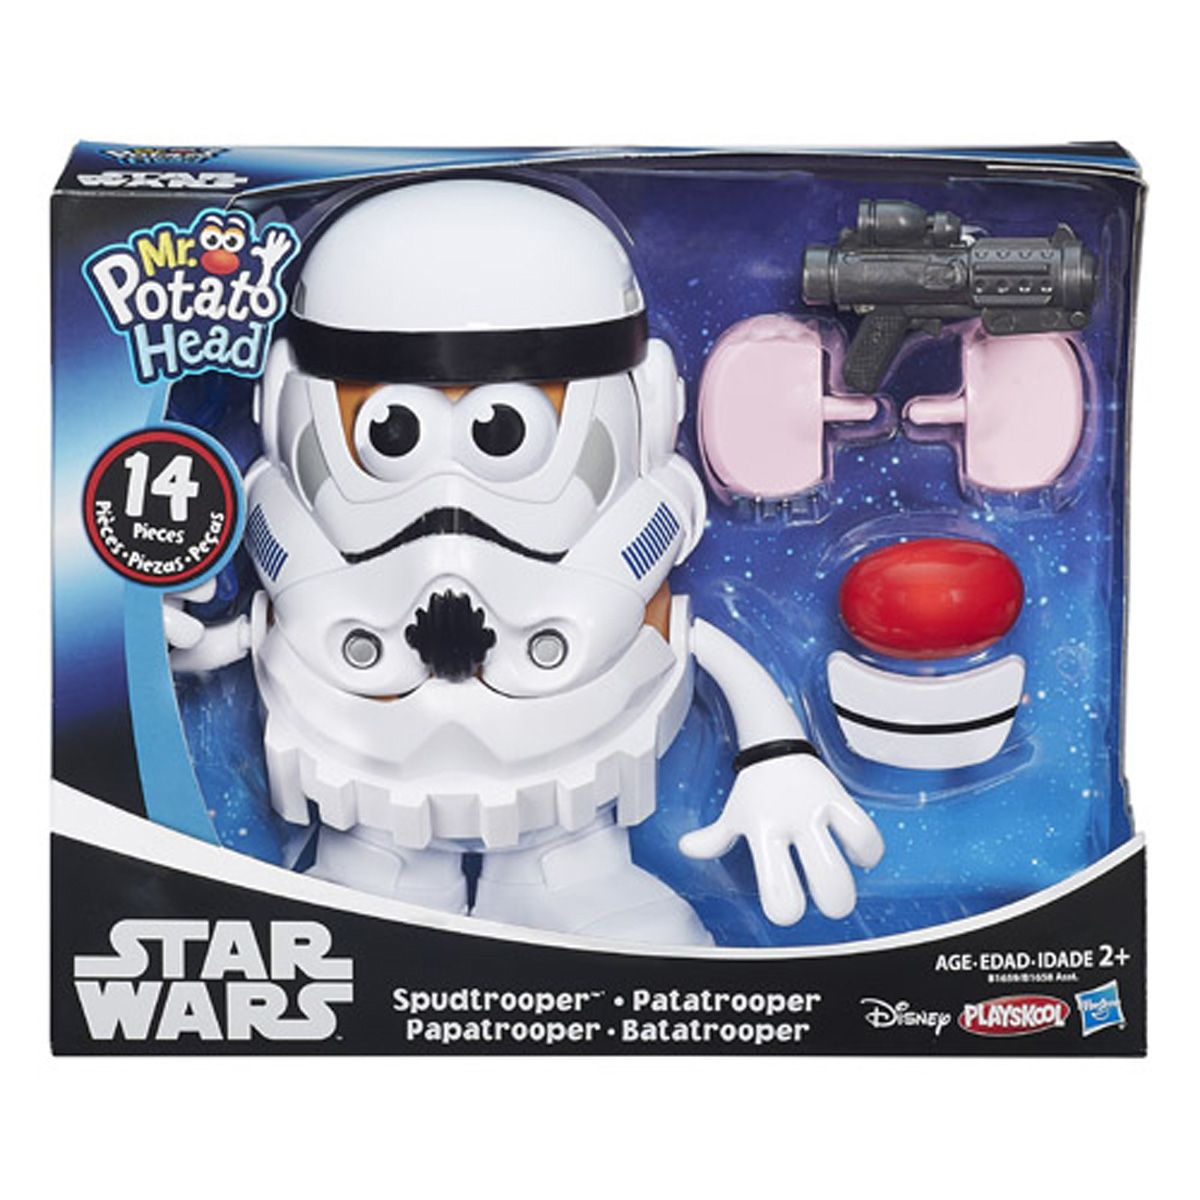 Trooper Wars Véhicules Star MPatate Et Figurines La yv0Nwm8nO